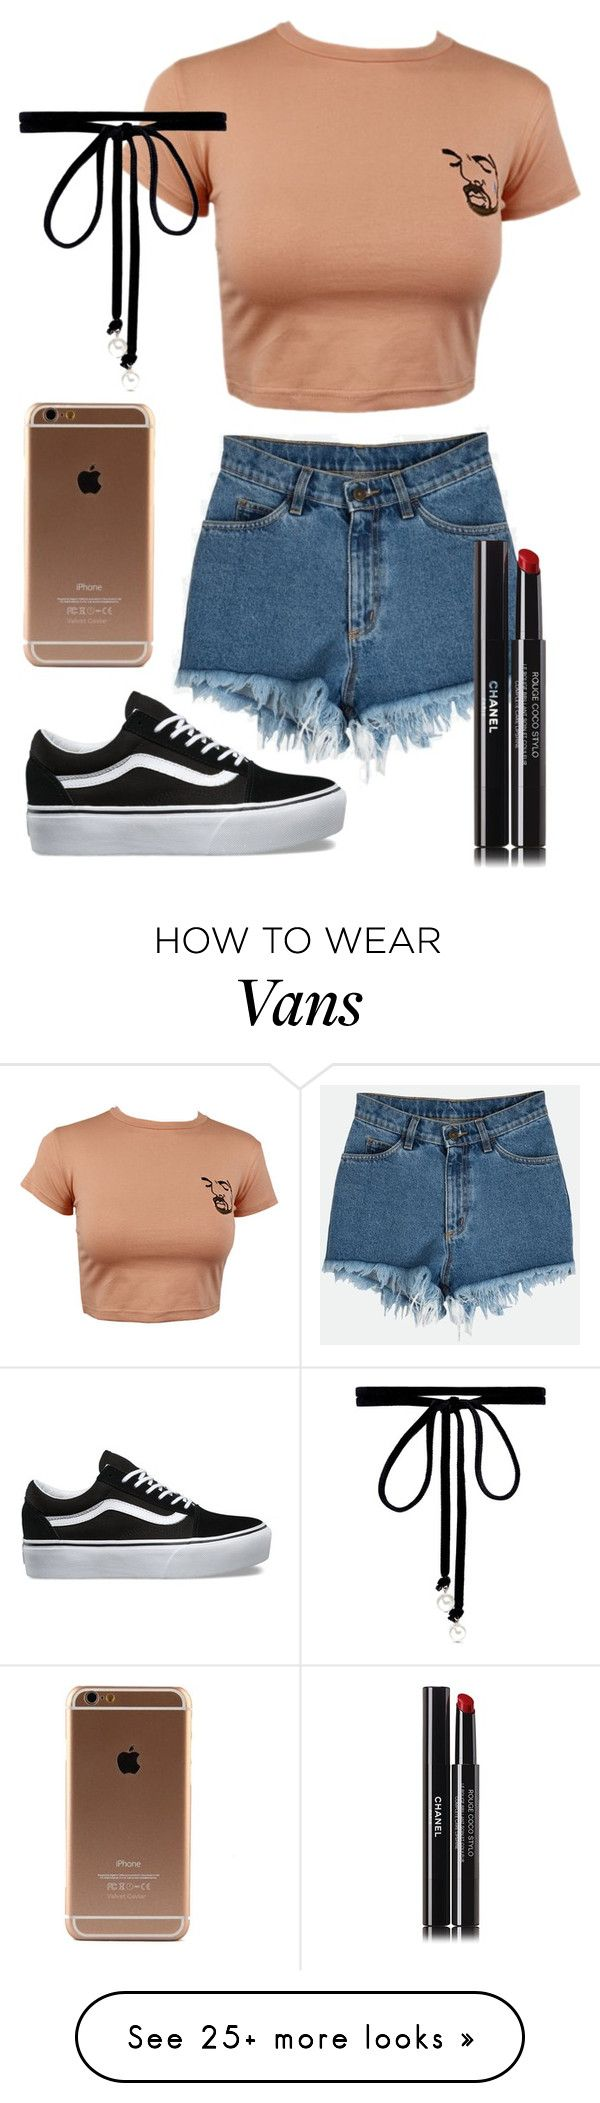 """Untitled #637"" by hey-there-its-kylah on Polyvore featuring Vans, Joomi Lim and Chanel"